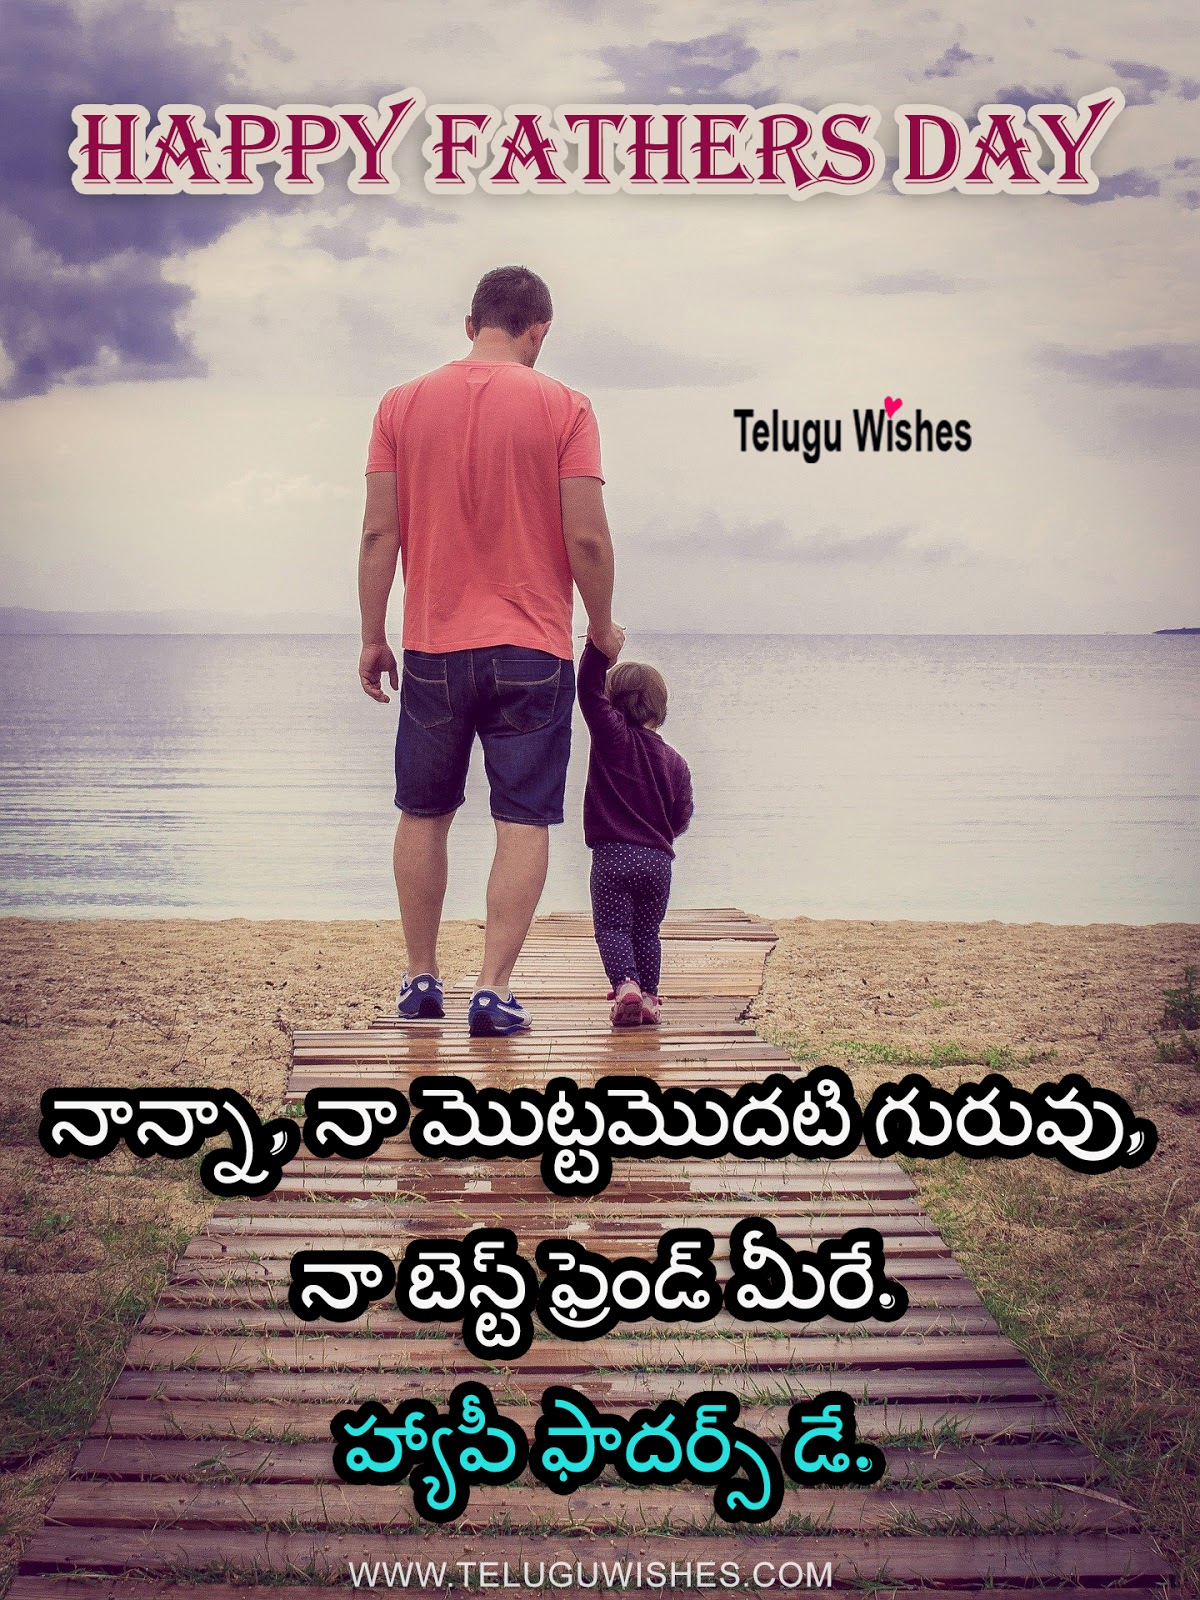 Fathers day quotes images wishes in Telugu